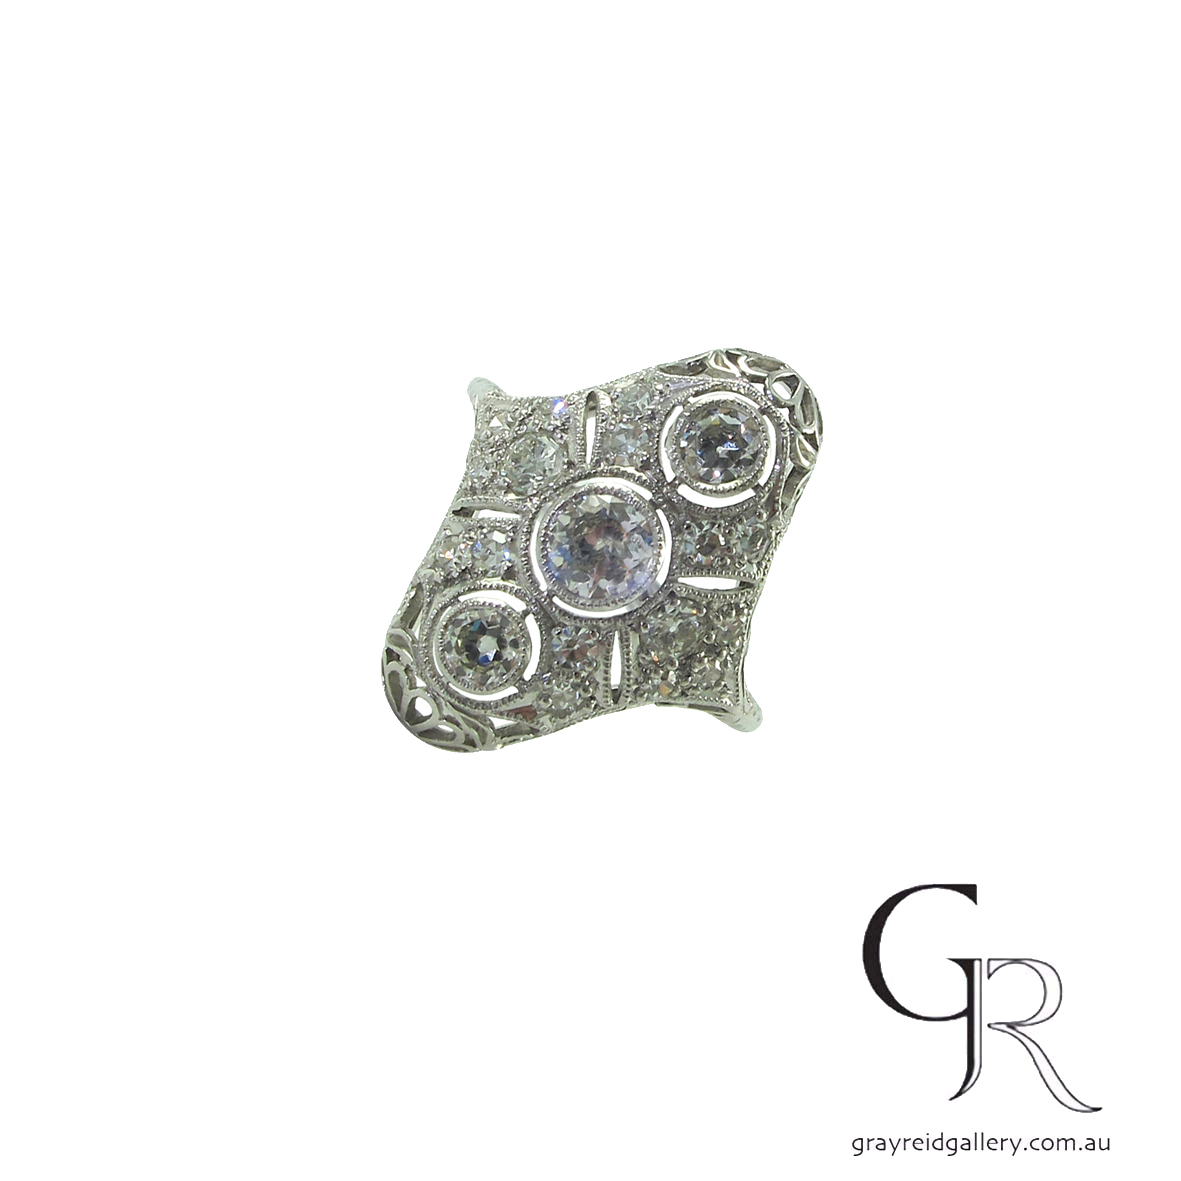 diamond plaque ring melbourne deco engagement gray reid gallery.jpg